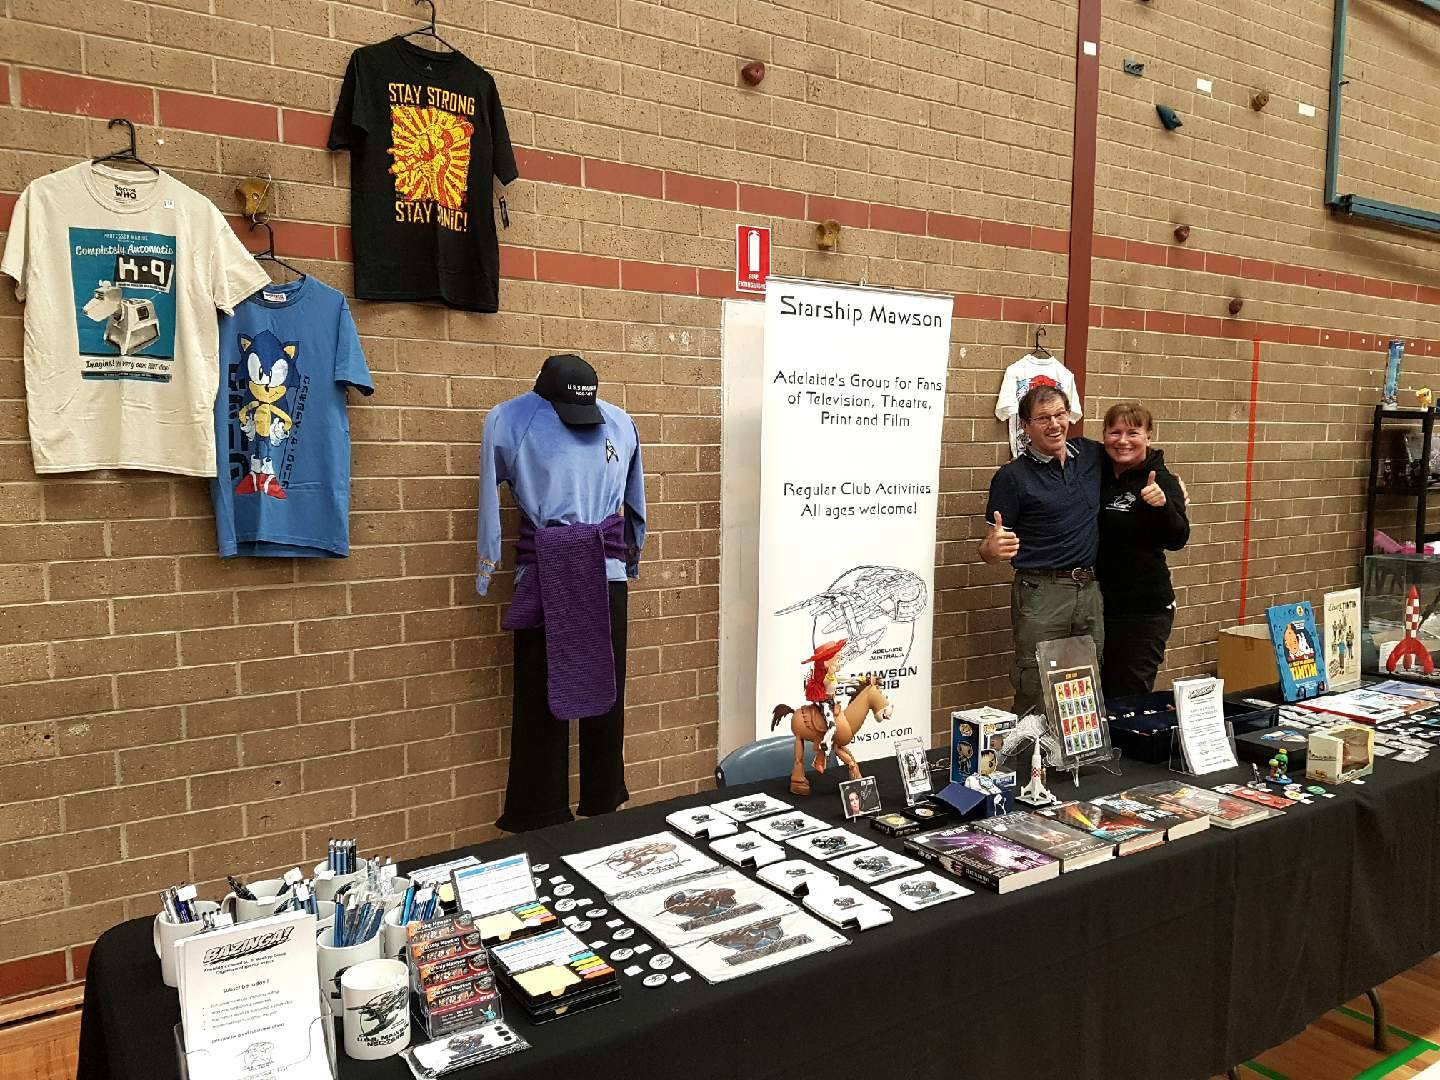 October 2: Starship Mawson Expo Crew, Ilona and Michael all set for another great event of marketing and promotion of Starship Mawson at the Adelaide Comic Con!